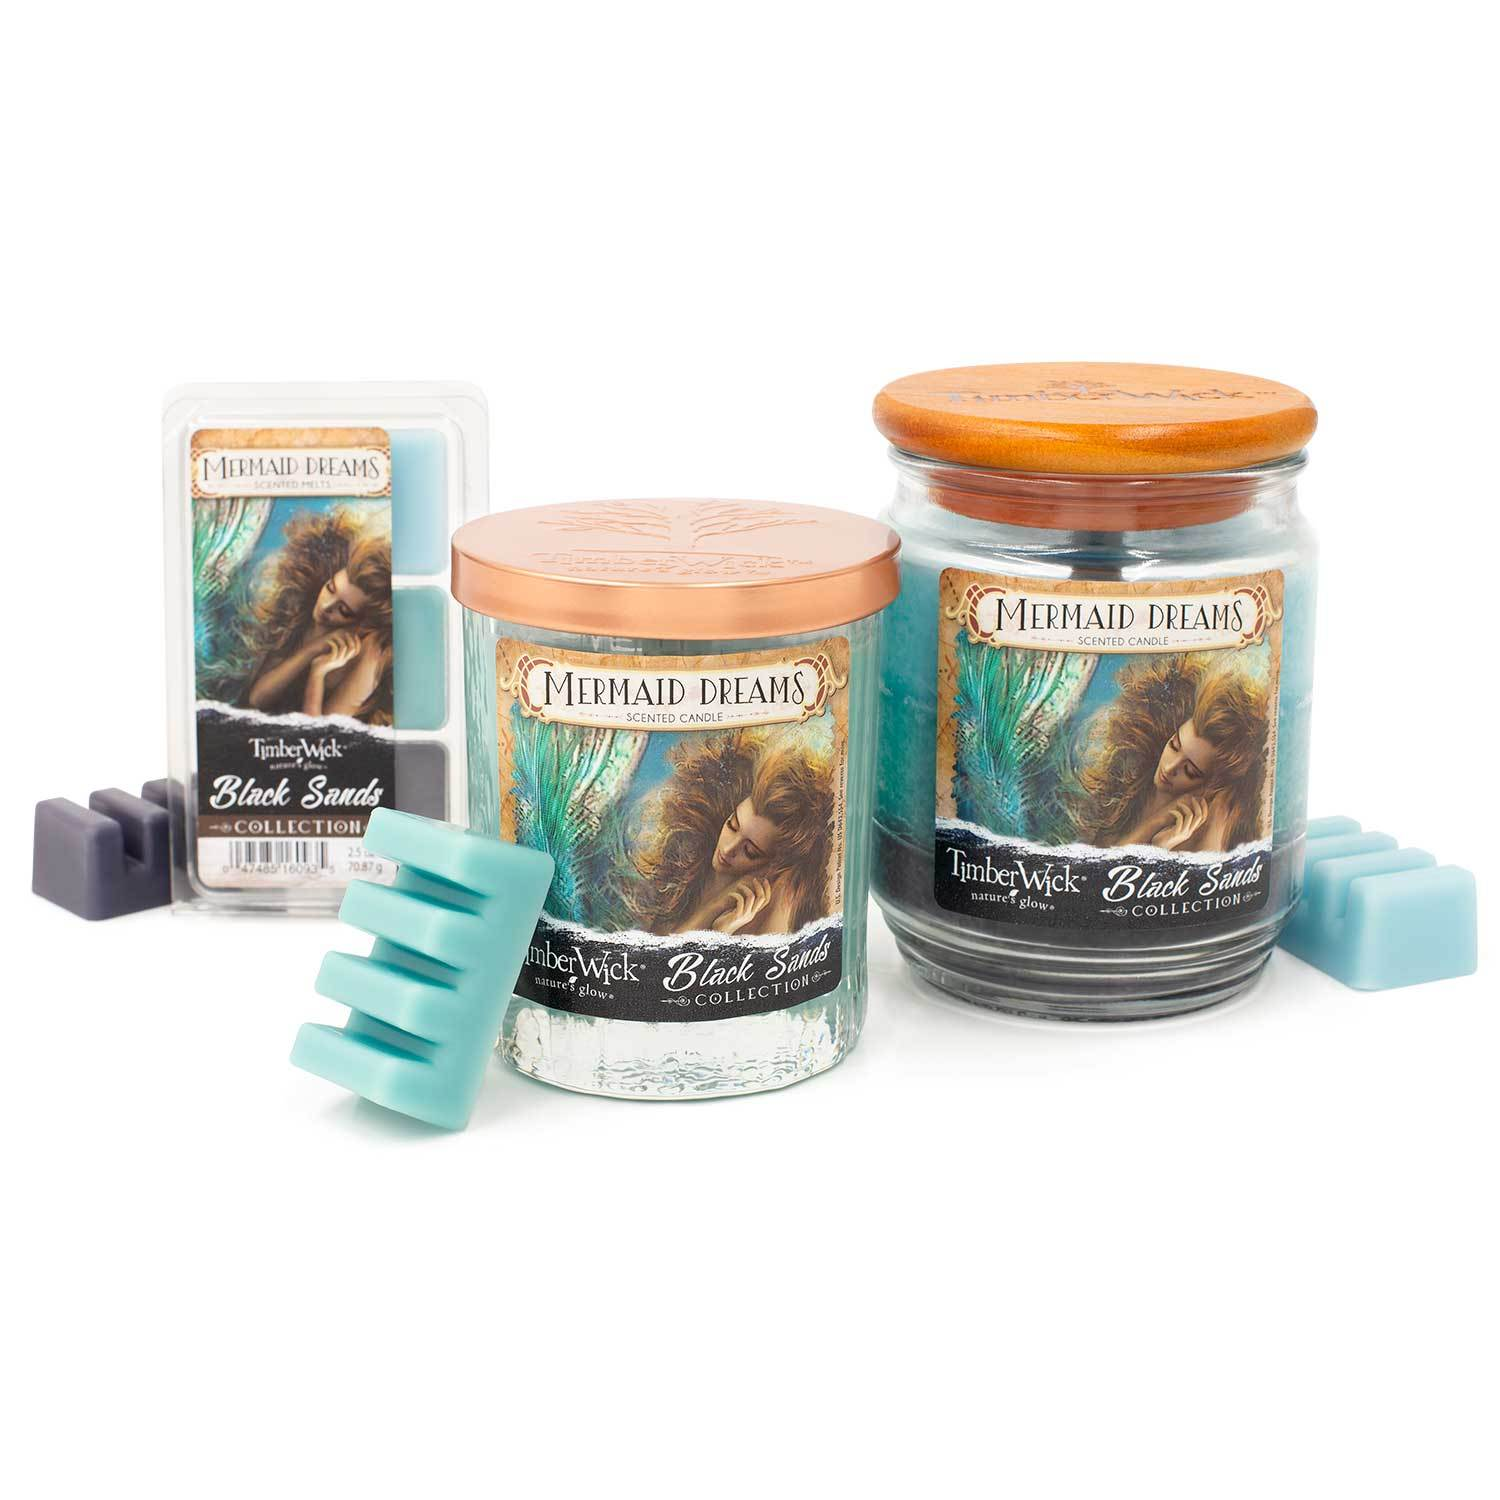 Mermaid Dreams Scented Wax Melts